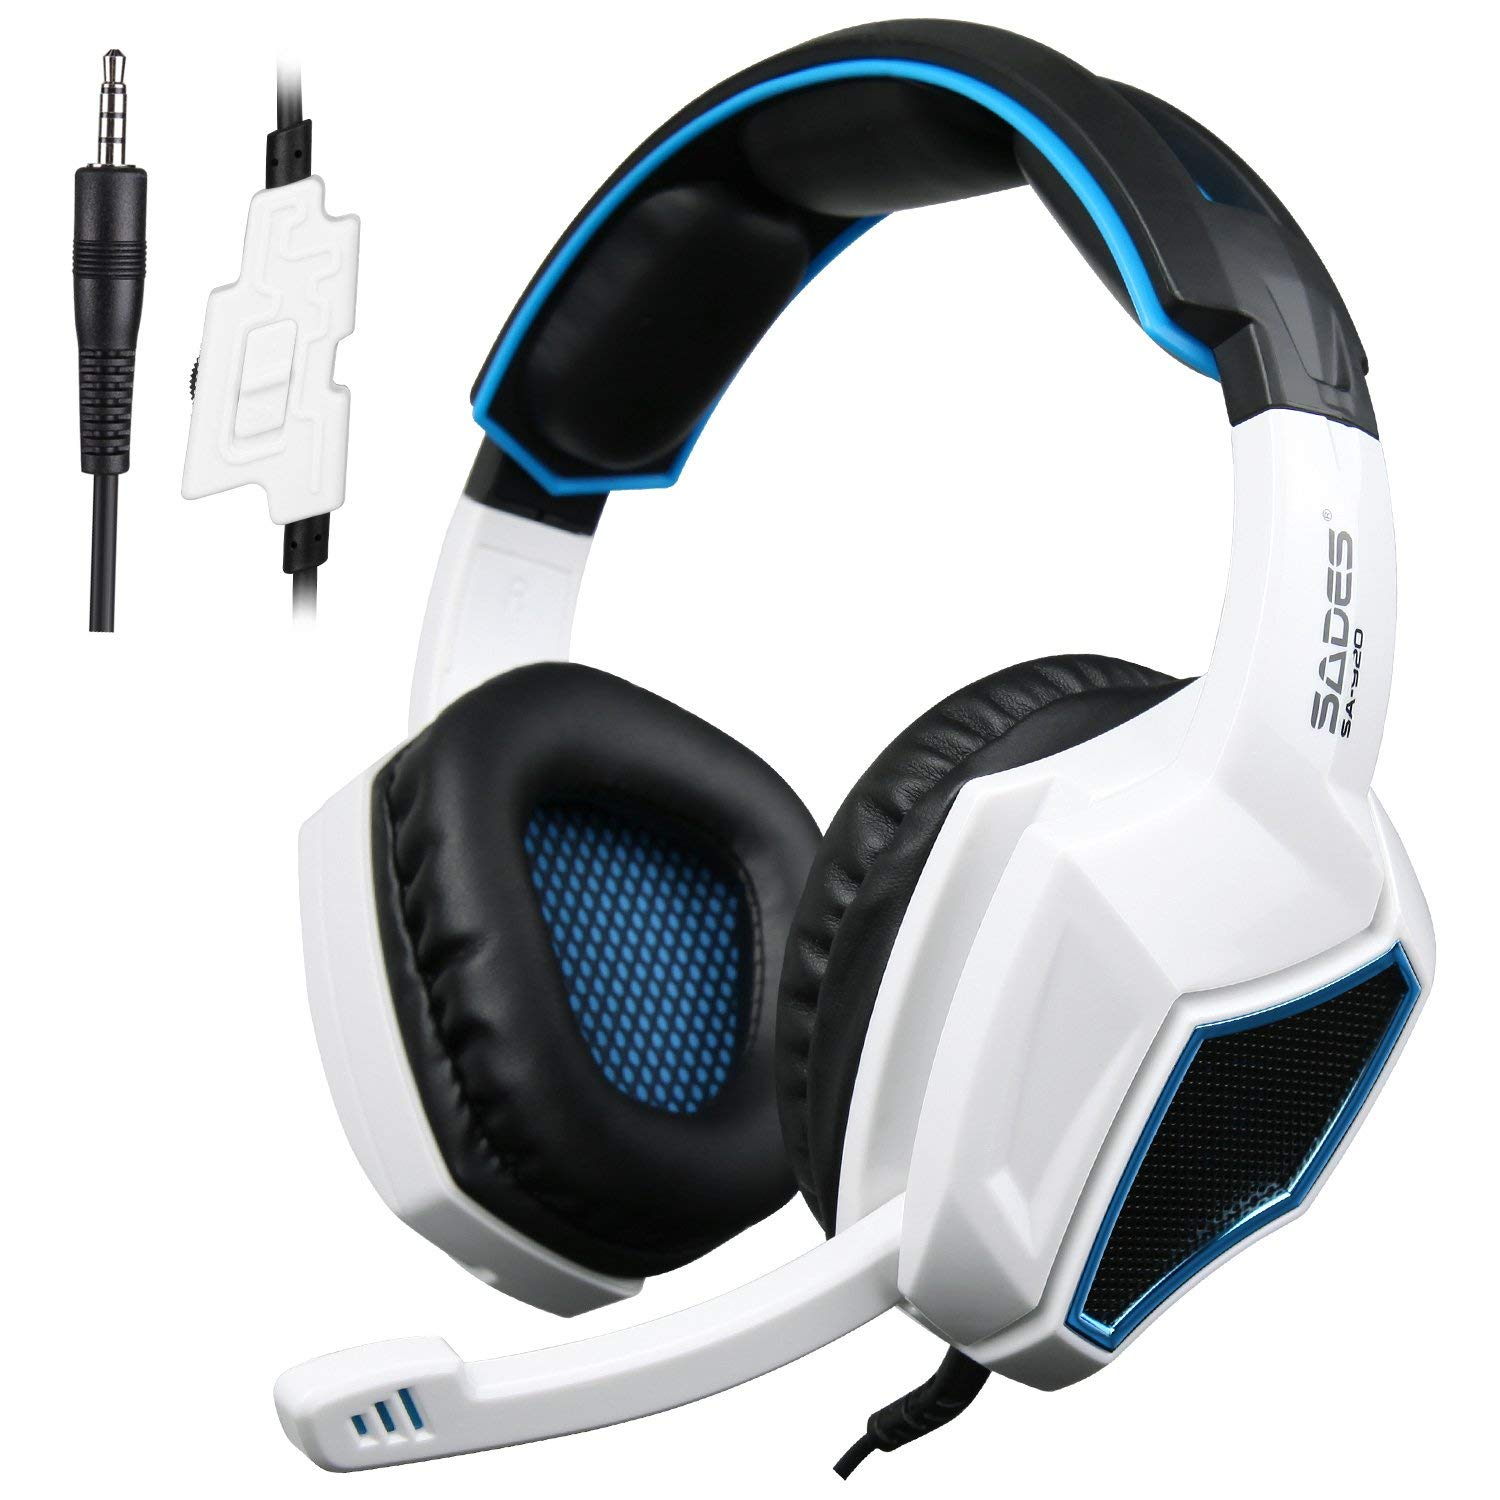 Sades SA 920 - What are the best gaming headsets for under